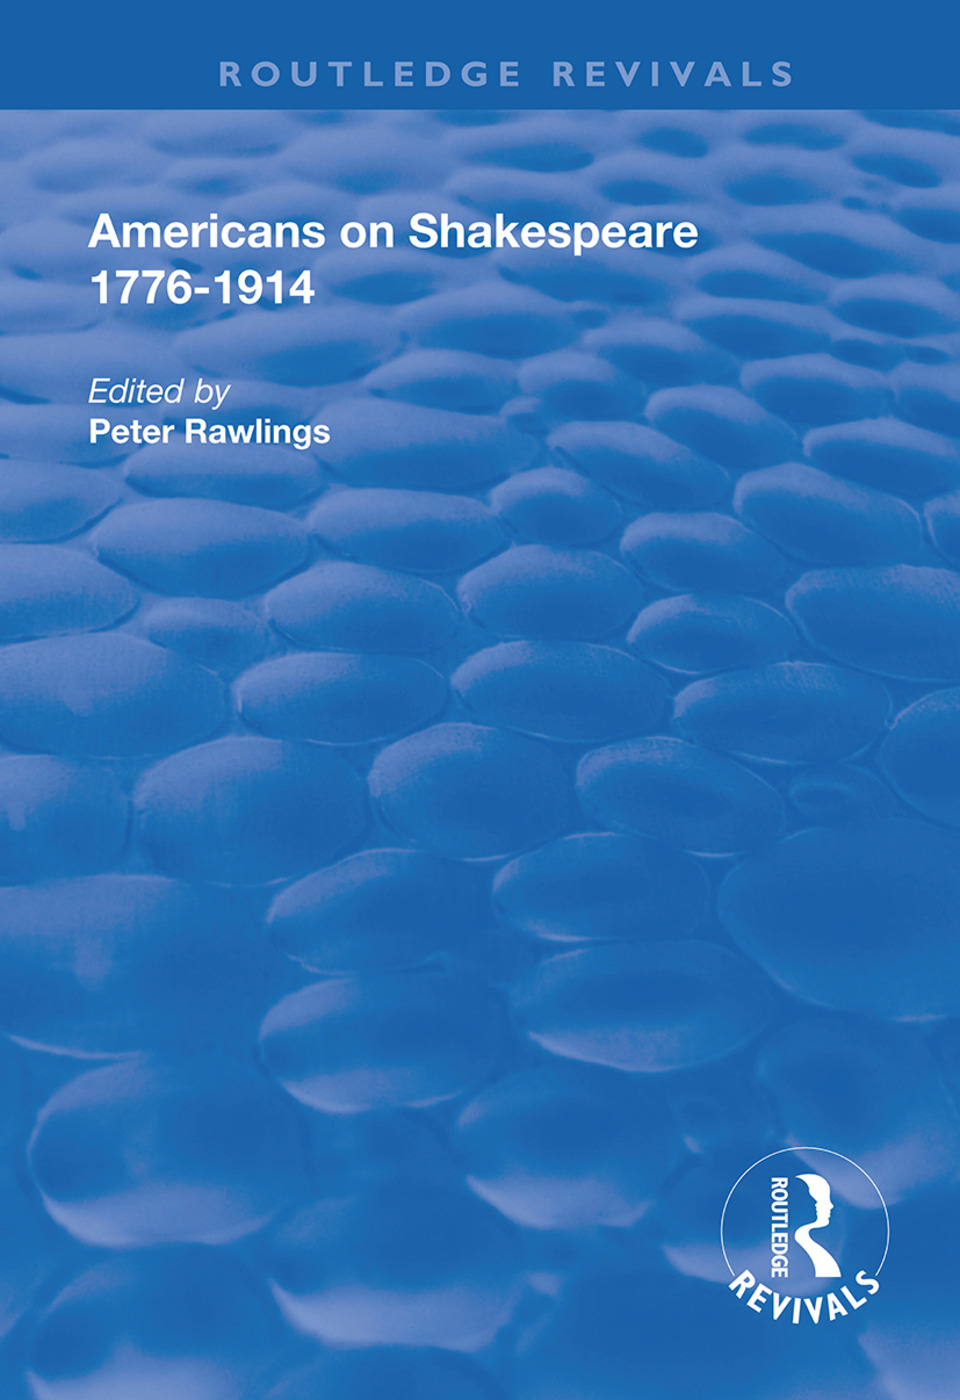 Americans on Shakespeare, 1776-1914